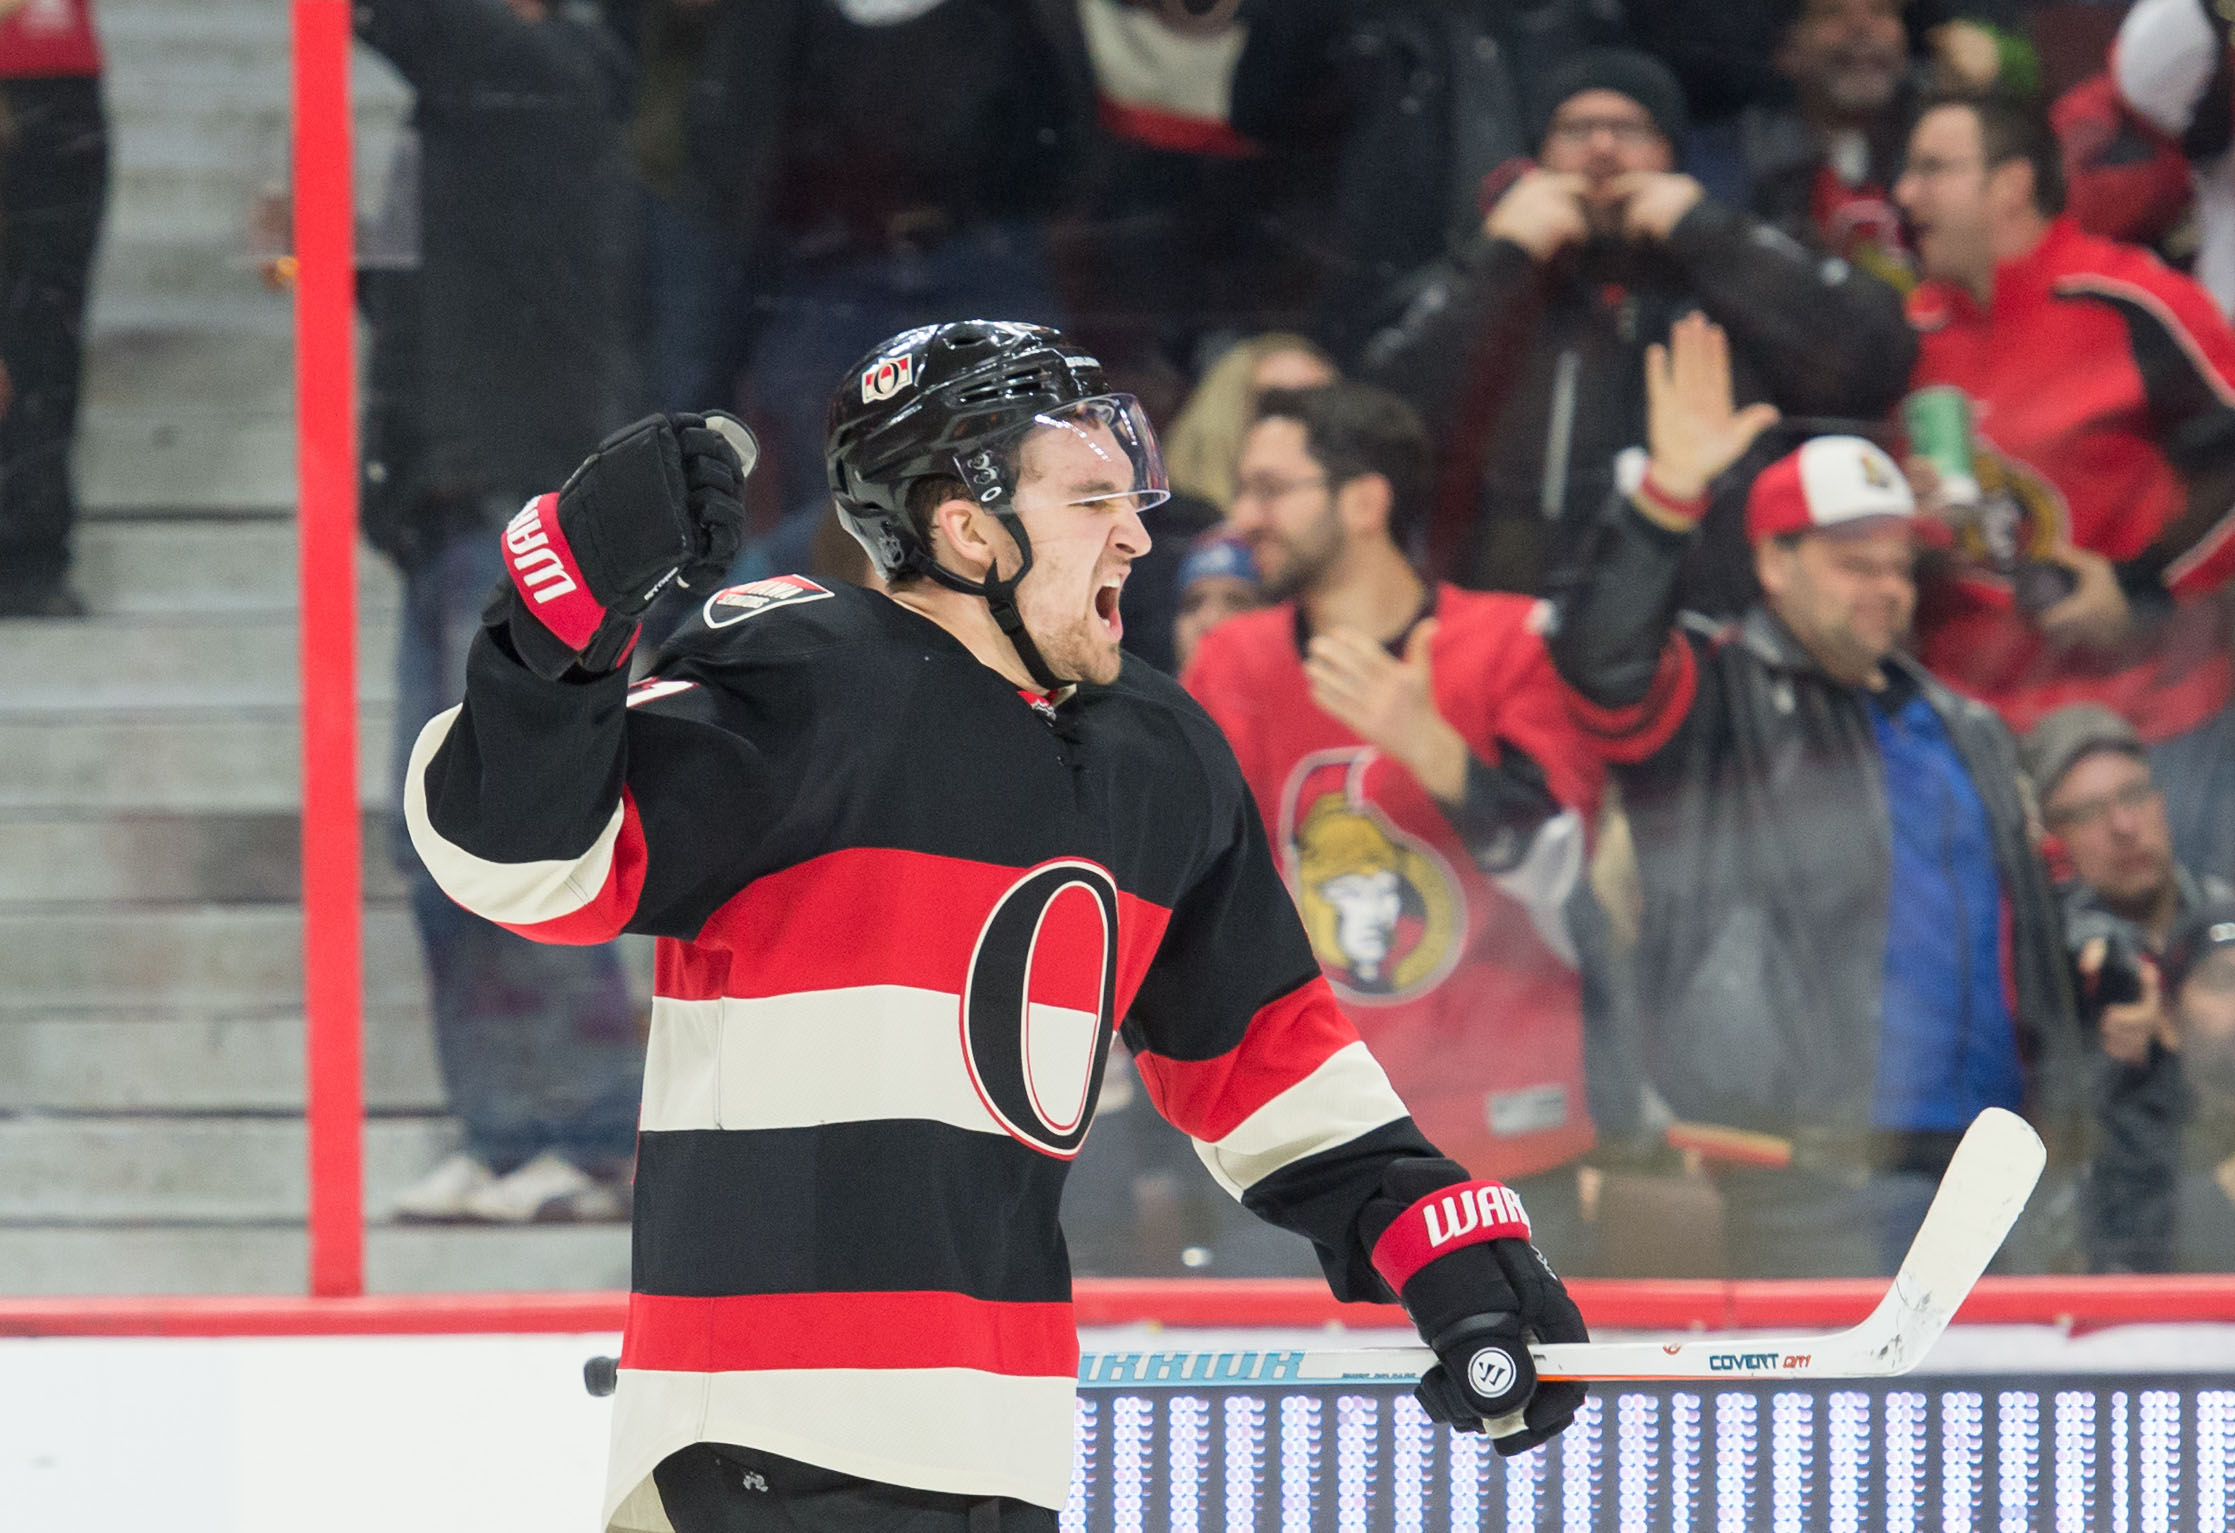 Mark Stone, with that sneeze that just won't come out